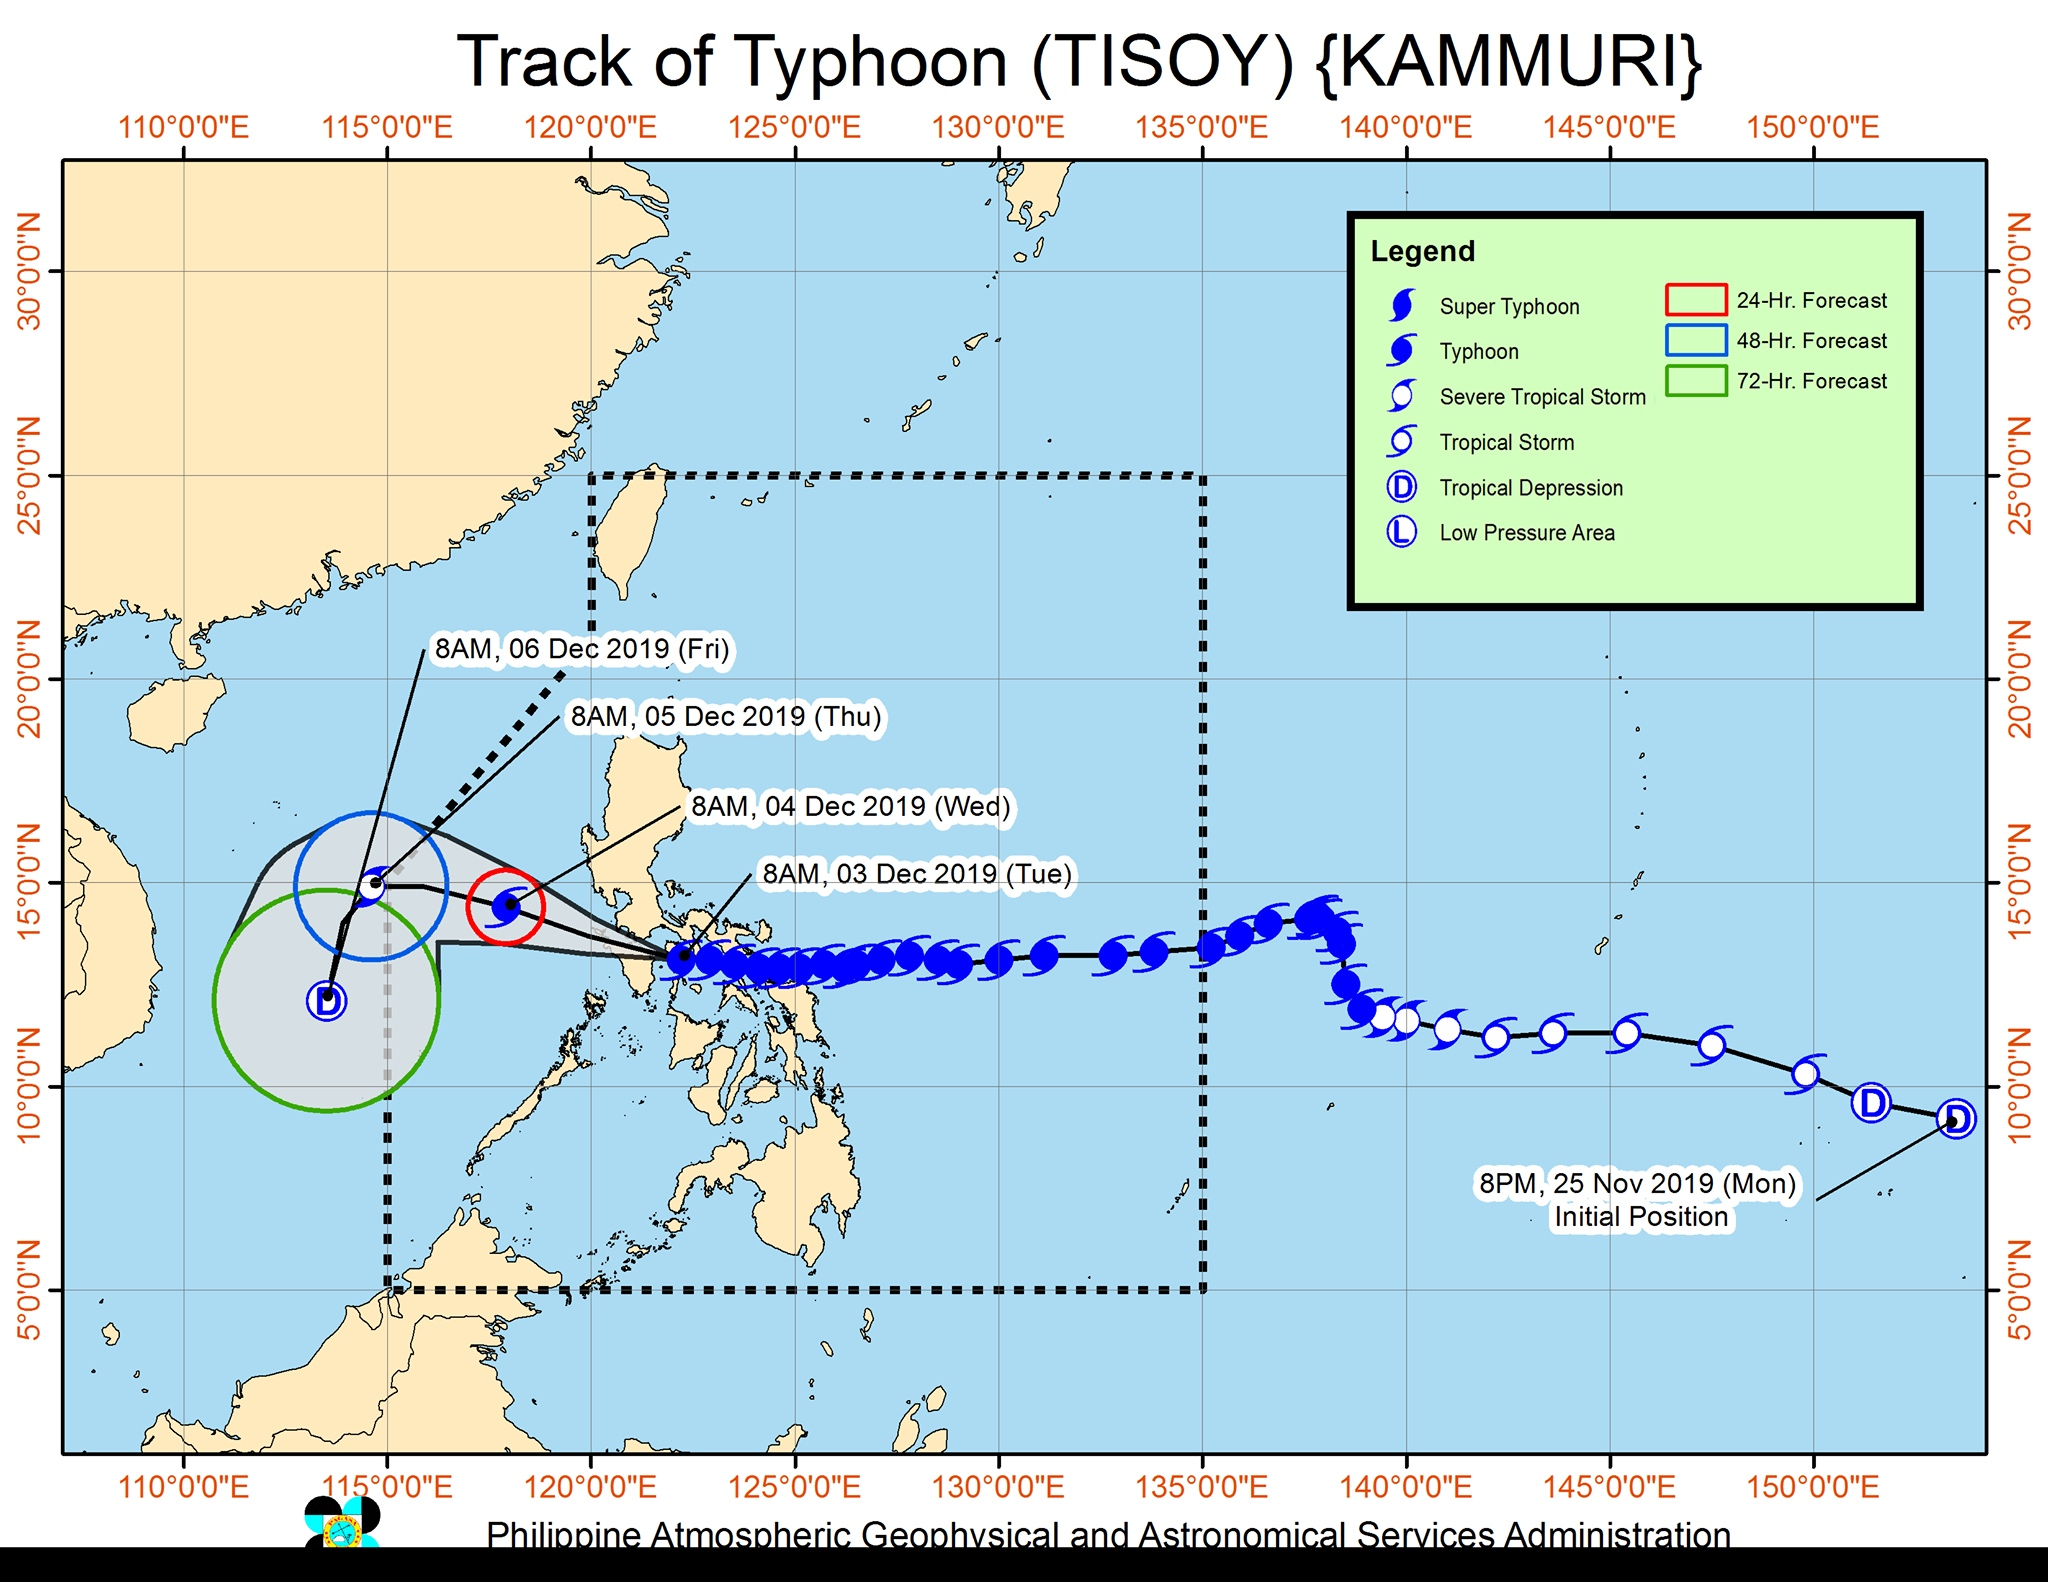 Forecast track of Typhoon Tisoy (Kammuri) as of December 3, 2019, 11 am. Image from PAGASA